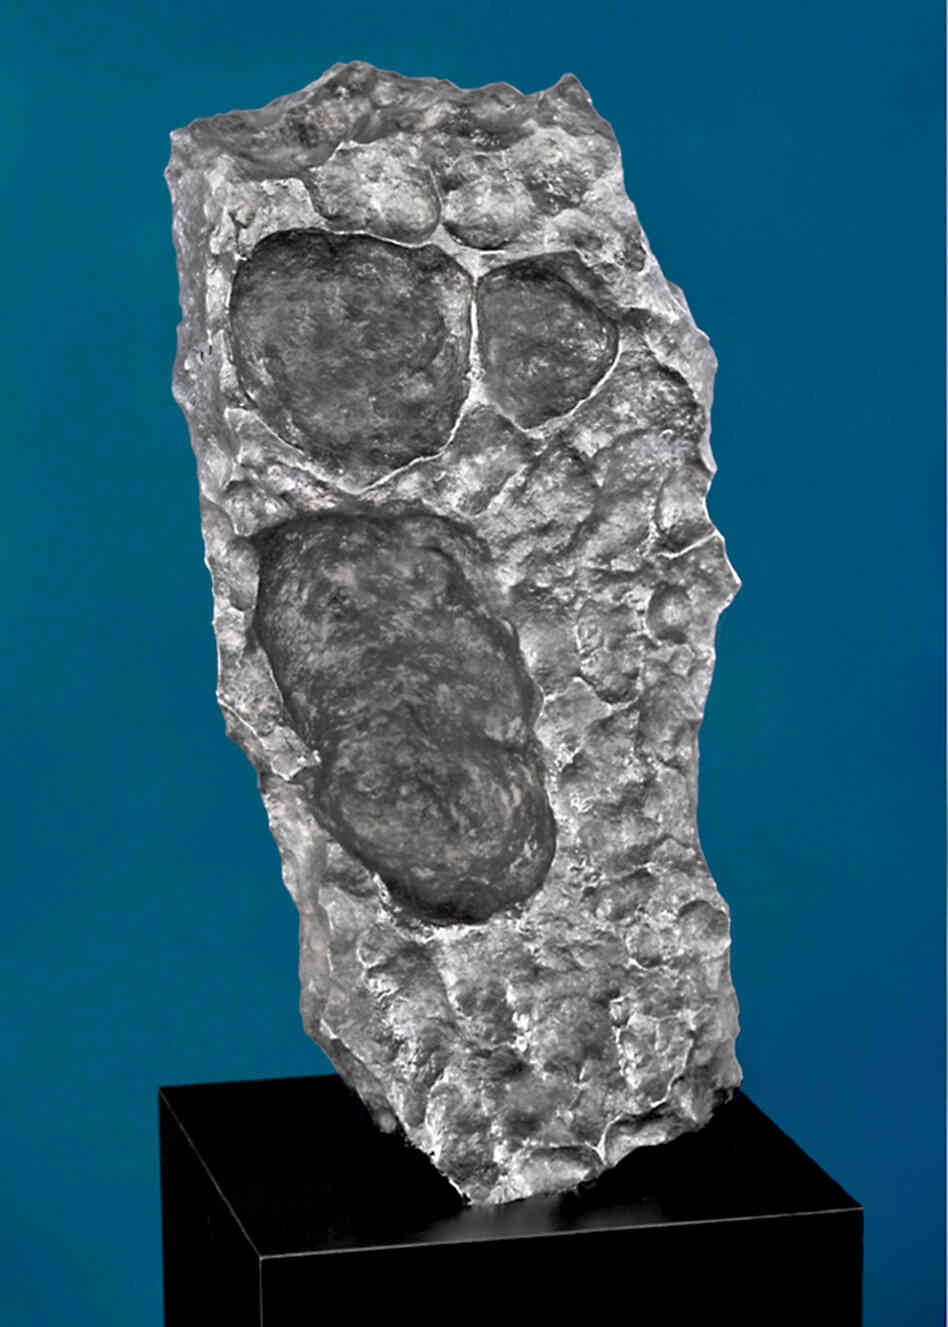 The Scream? Meteorites can take oddly familiar shapes. This one has echoes of Edvard Munch's famous painting. The Gibeon meteorite chunk was found in Namibia. Estimated price: $175,000-$225,000.